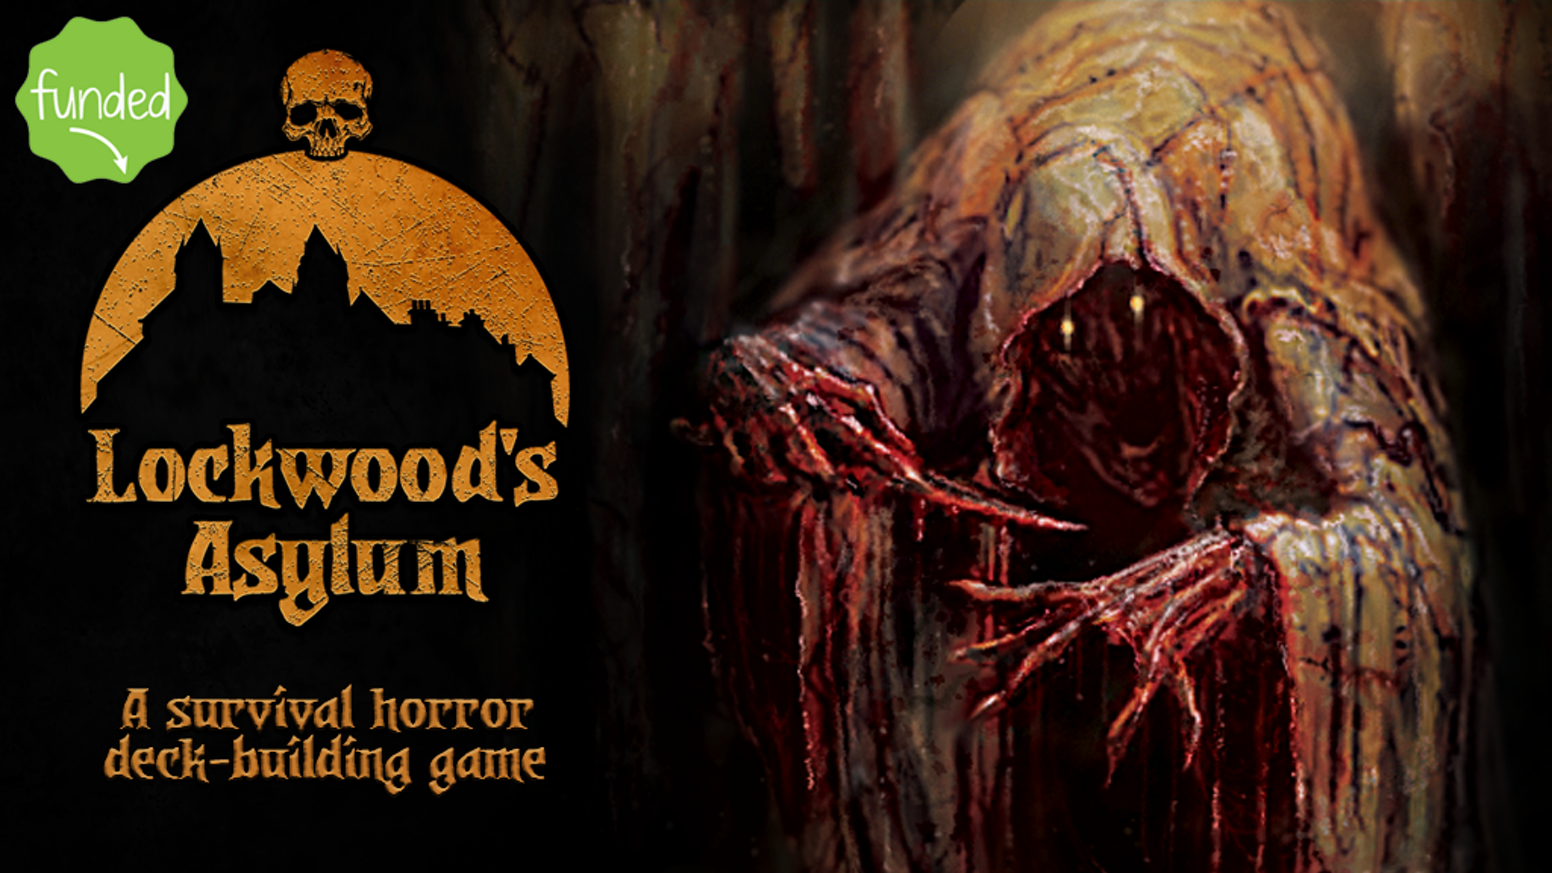 A survival horror deck-building game where you build the opponent's deck! Gather allies, fight monsters, stay alive!